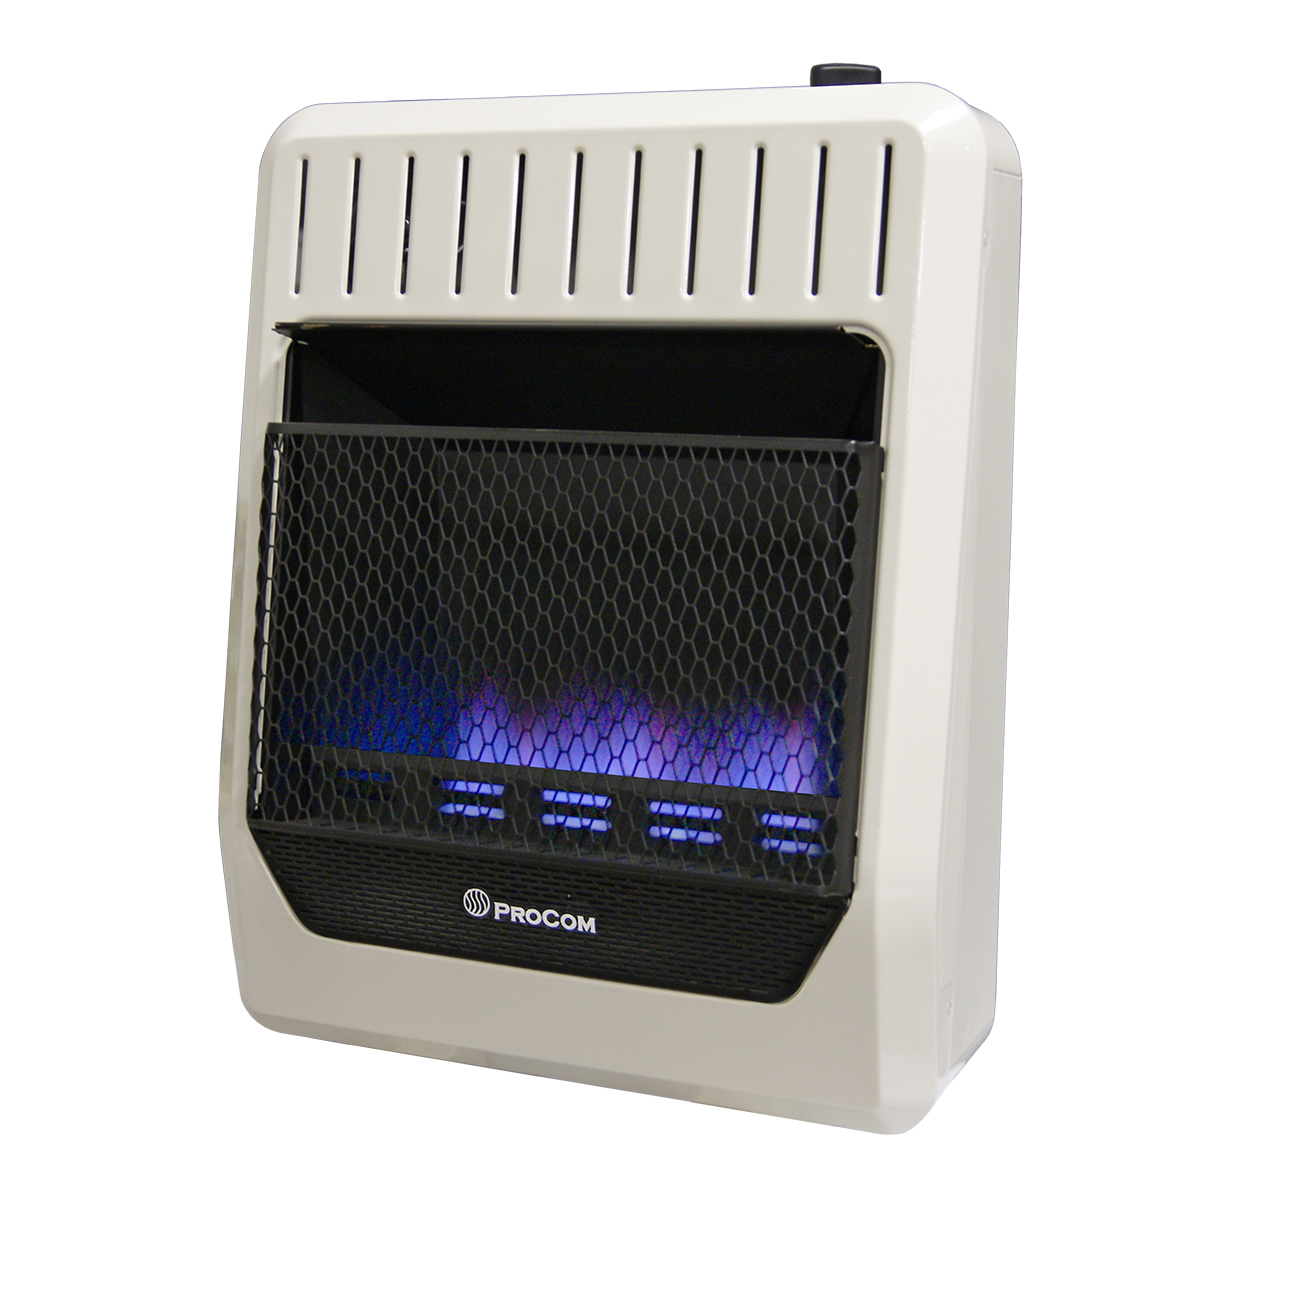 Amazing Ventless Propane Heater Pros And Cons Of A Propane